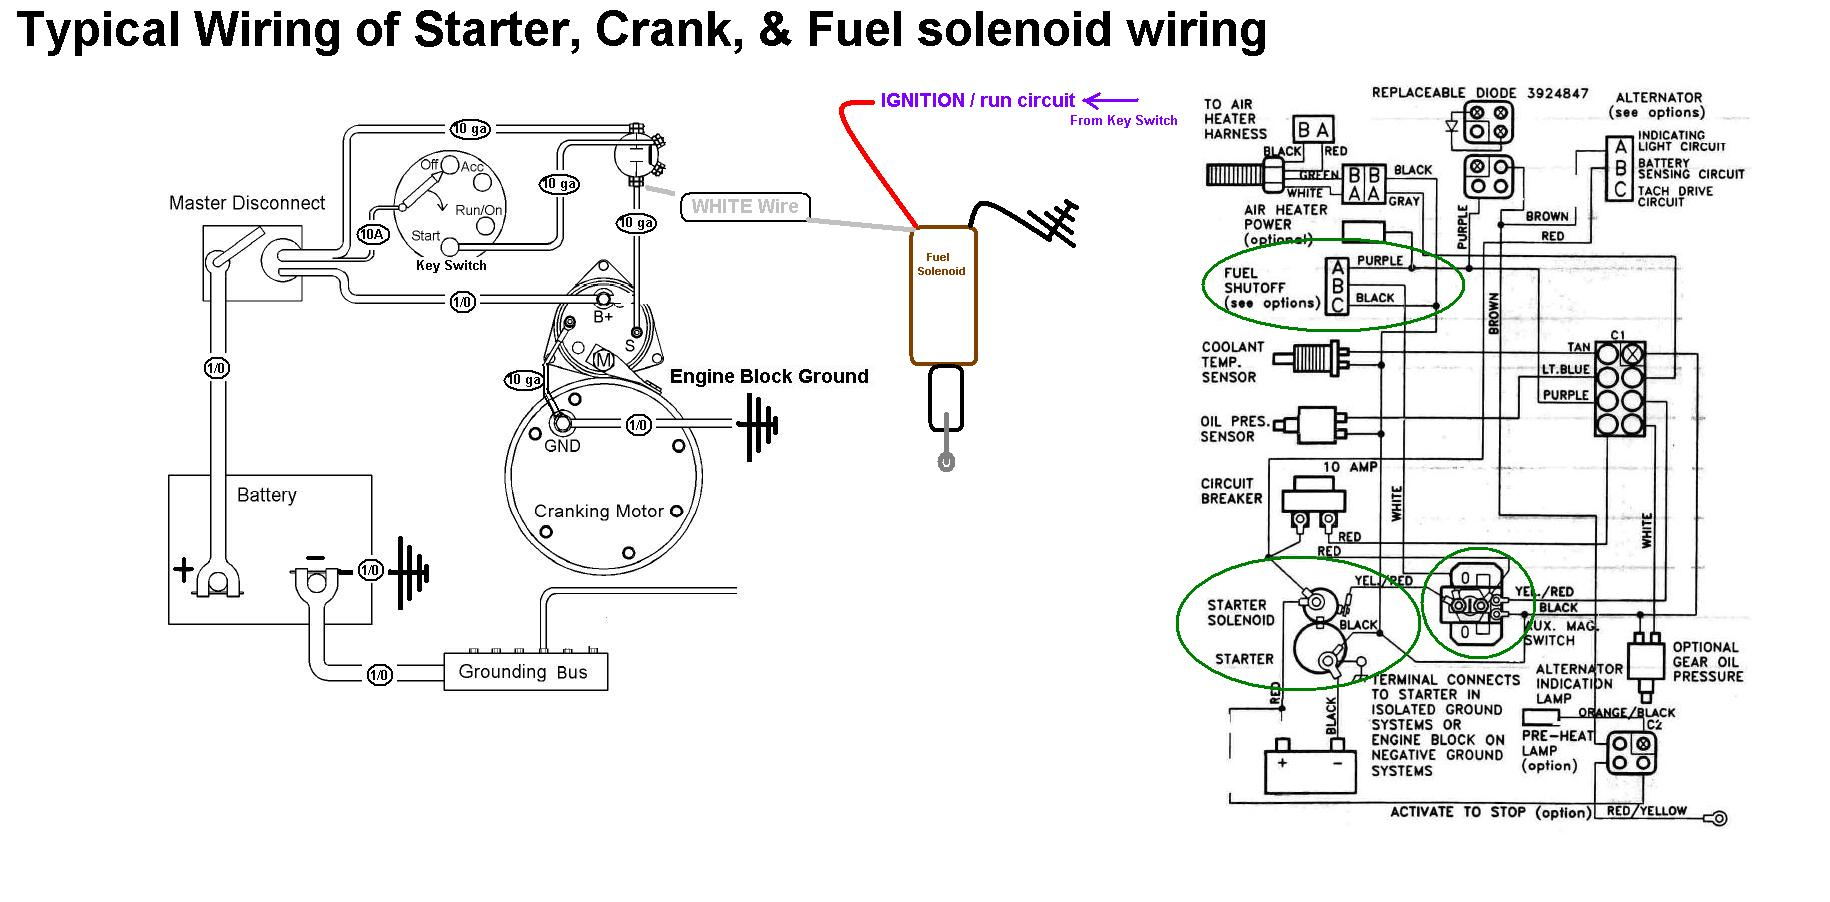 Dodge Cummins Alternator Wiring Daily Update Diagram 1993 W250 Starter Crank Fuel Shutoff Solenoid Seaboard